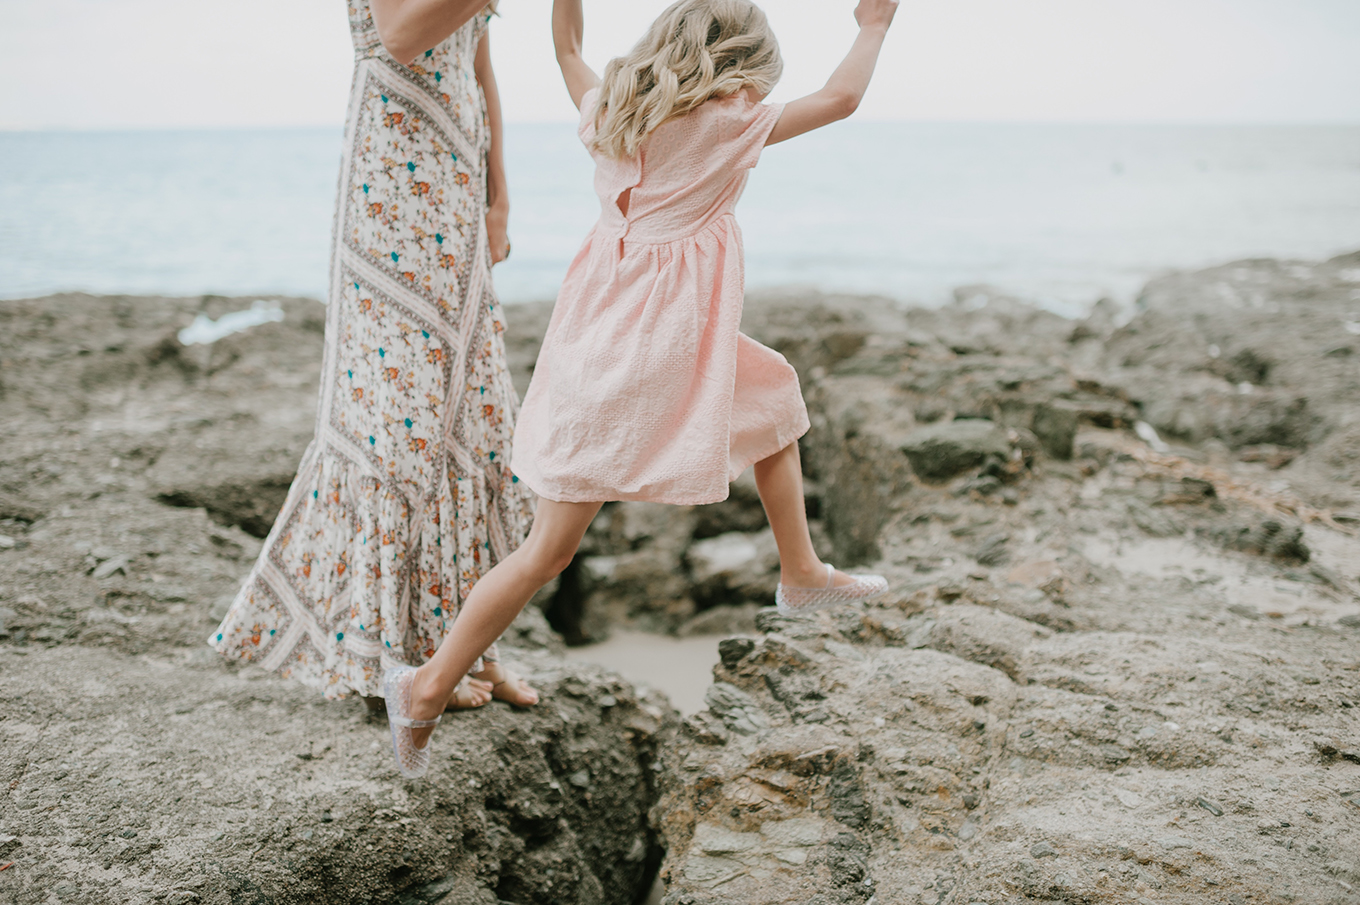 Saying yes to less means less tension in your shoulders and more connection with your loved ones. It means more JOY in motherhood.